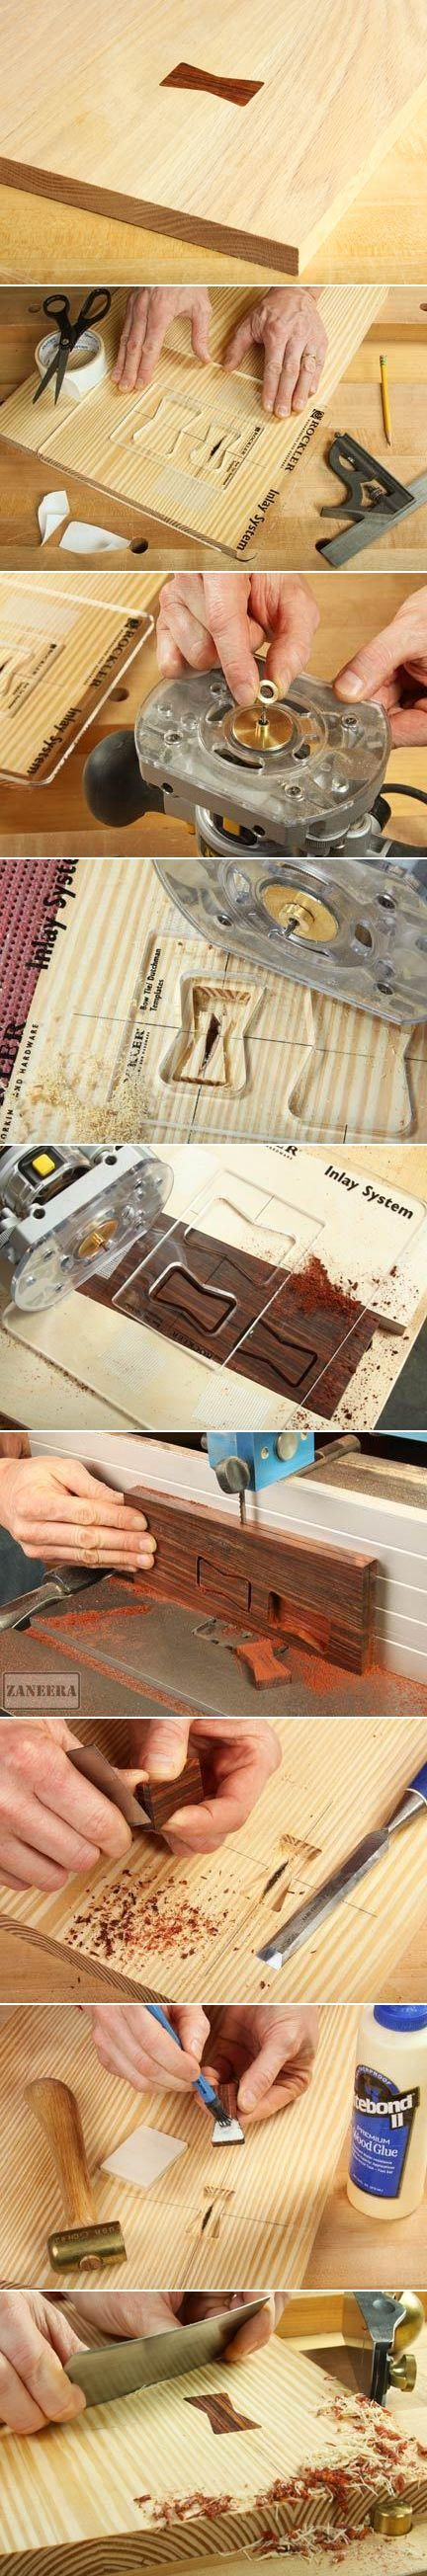 making butterfly keys with your router from http://www.woodworkersjournal.com/making-butterfly-inlay-keys-router/